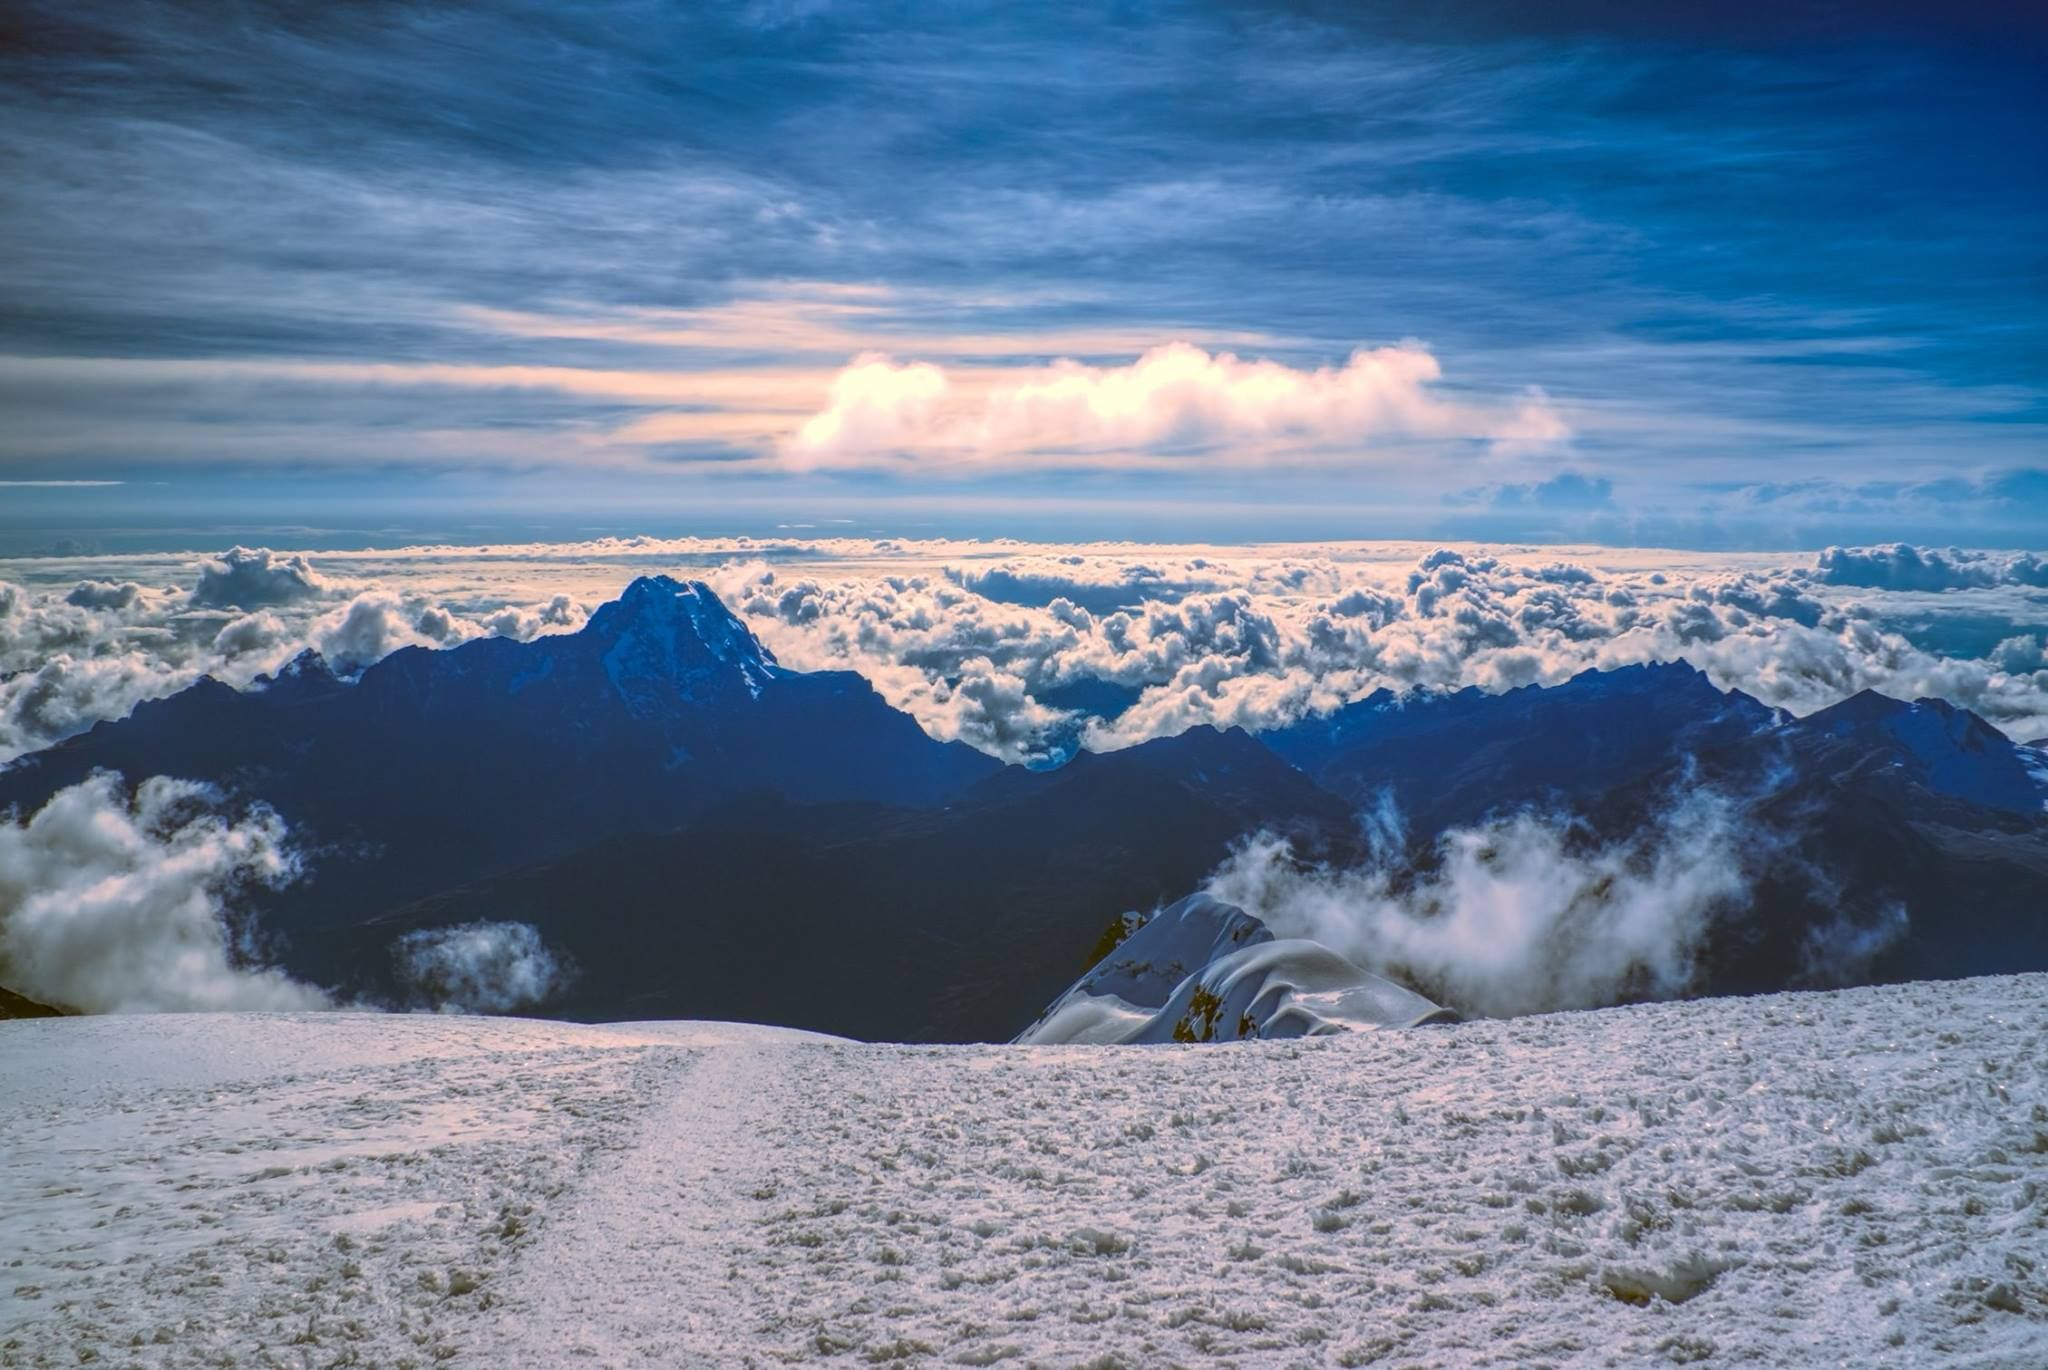 Breathtaking morning view from near the top of Mount Huayna Potosi (6,088 m) in Bolivia.